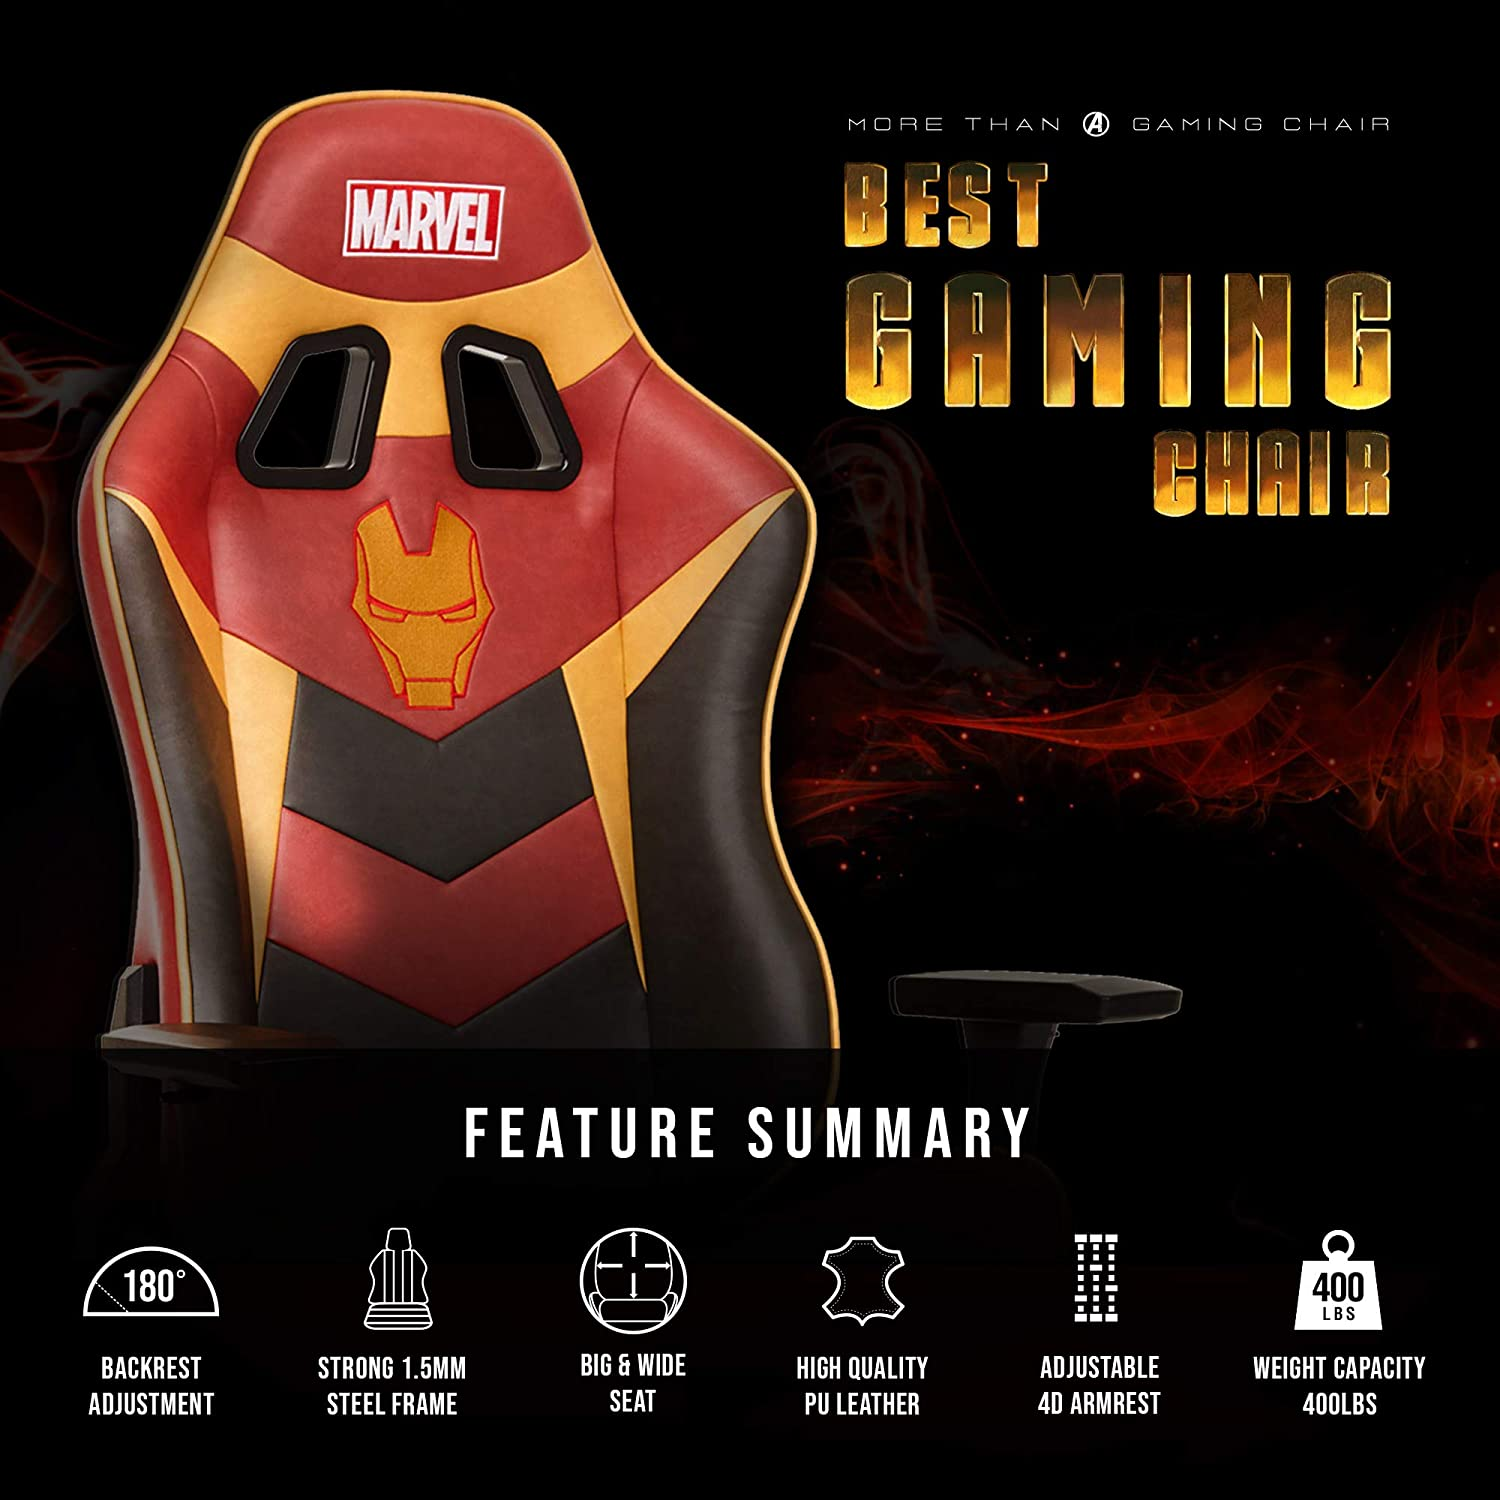 Marvel Avengers Iron Man Big Wide Heavy Duty 400 lbs Gaming Chair Office Chair Computer Racing Desk Chair Red Gold – Endgame Infinity War Series, Marvel Legends